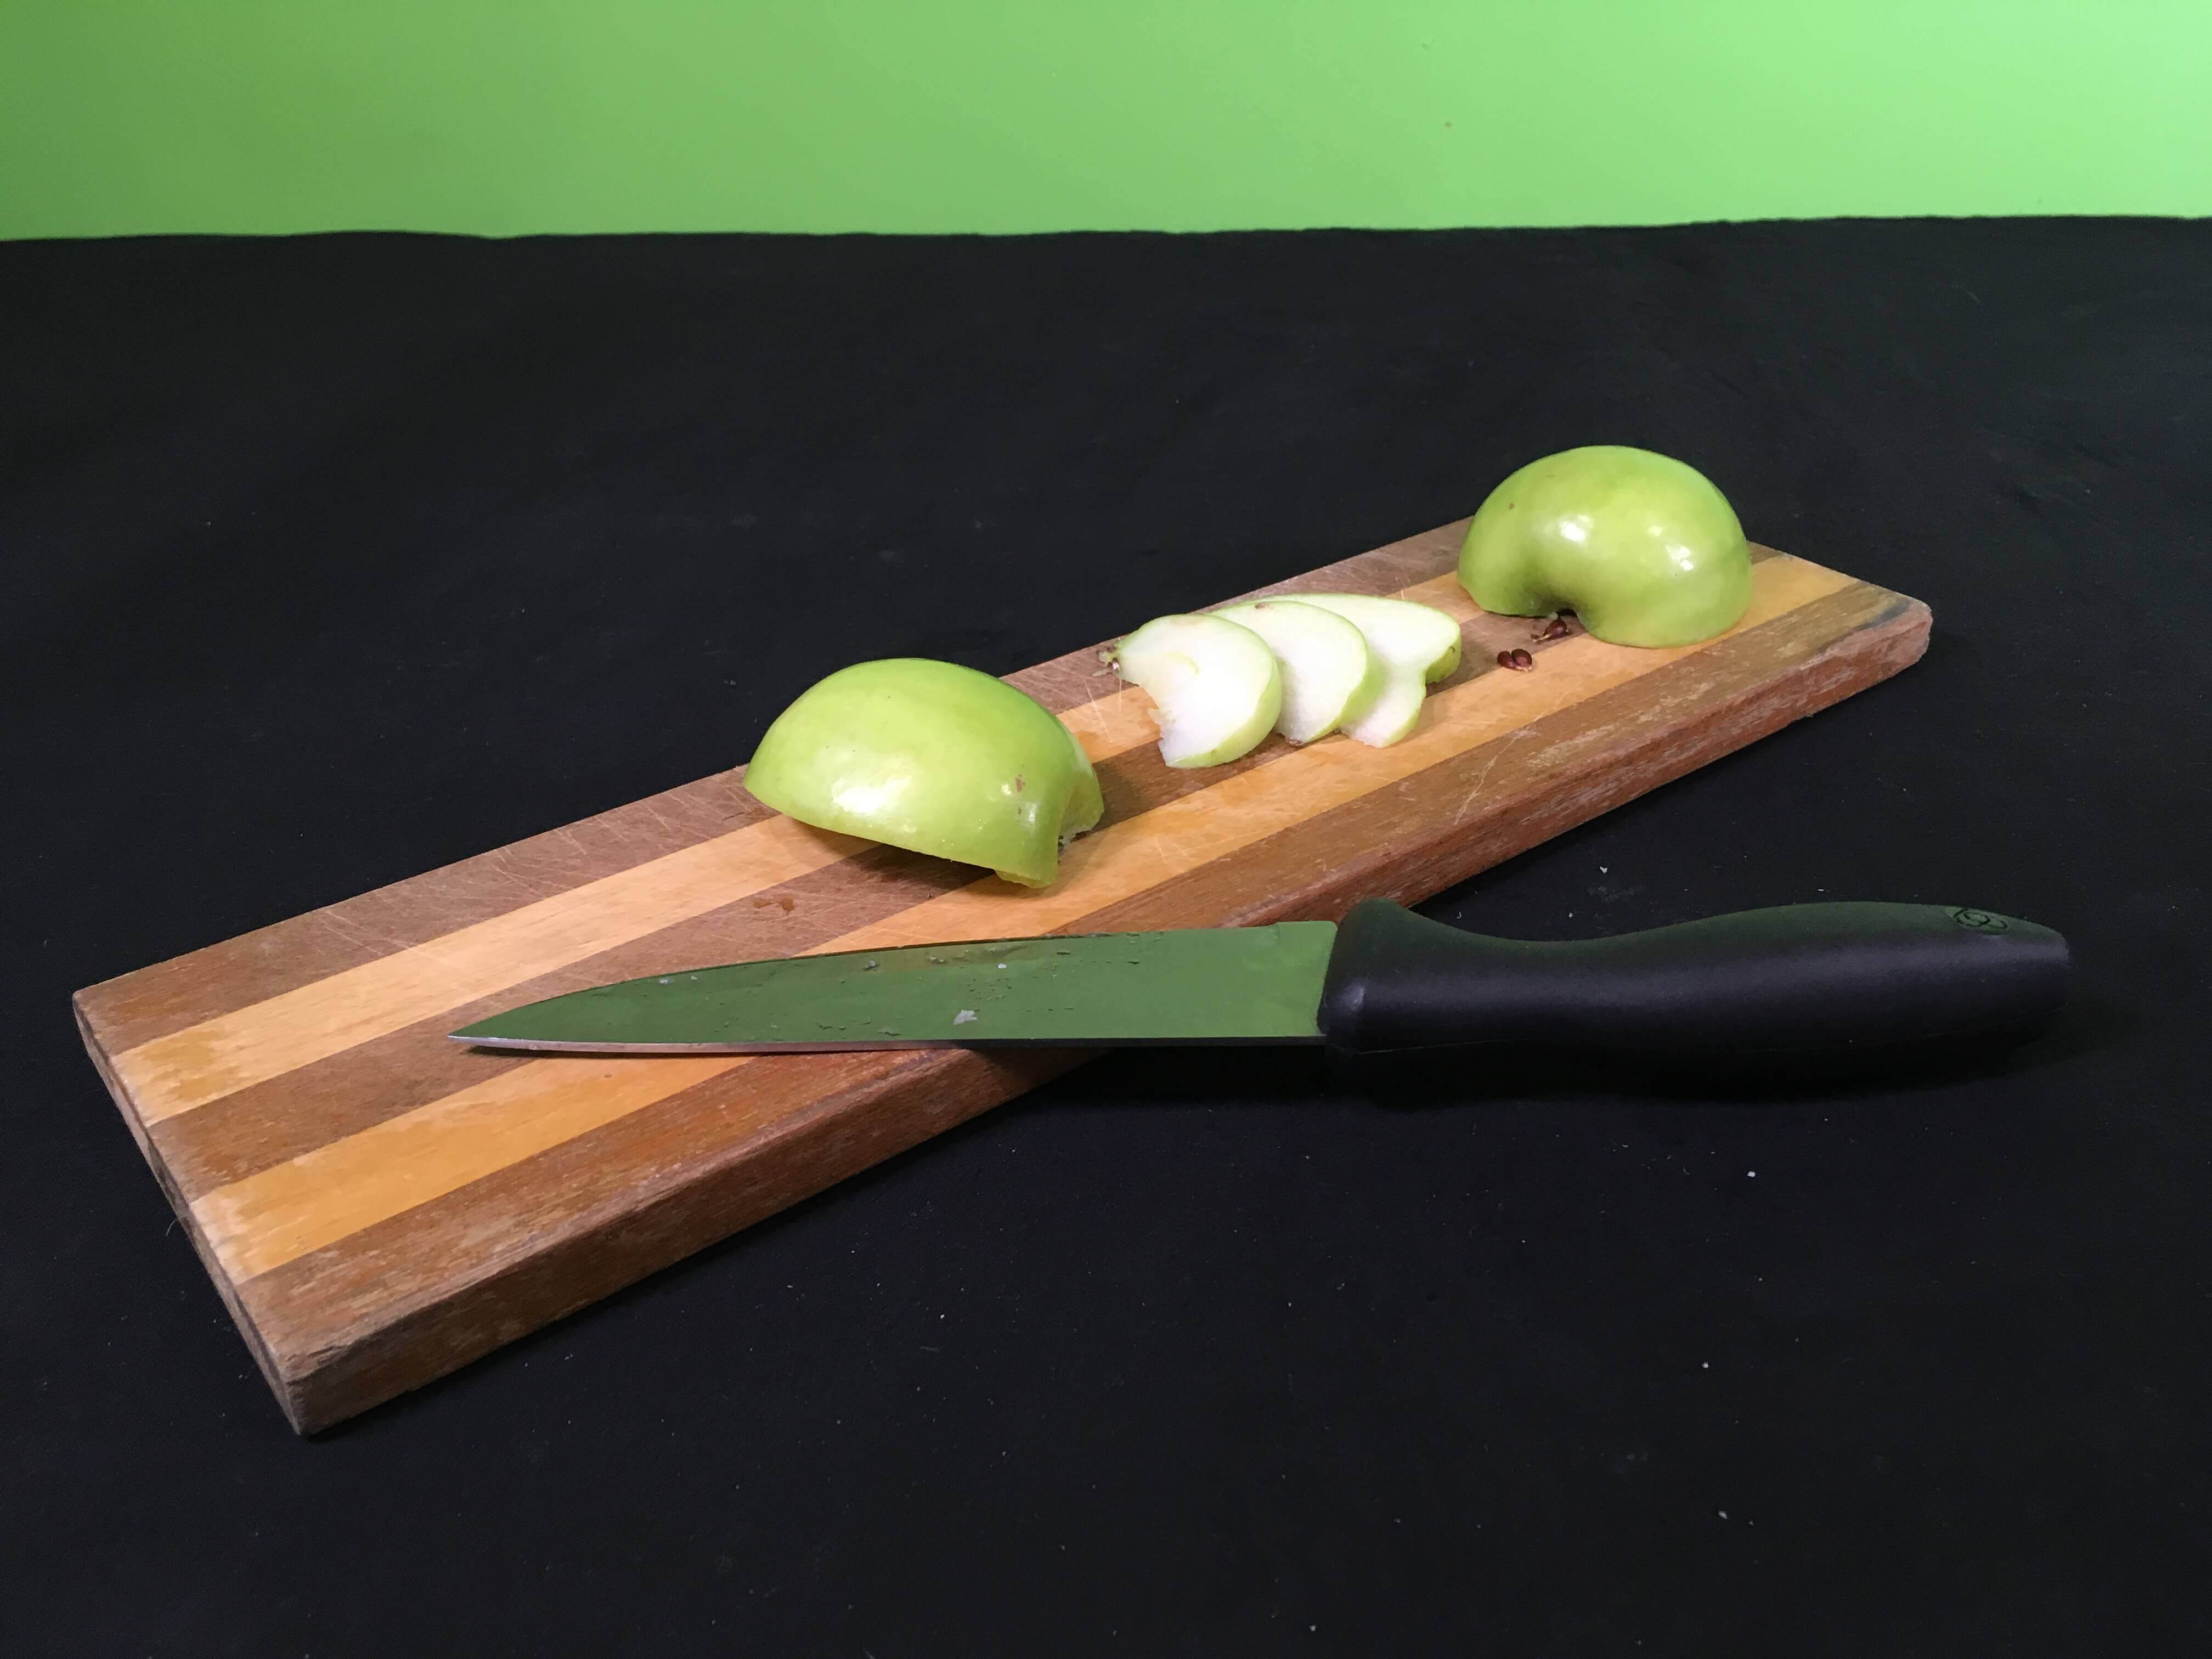 Why Does Fruit Go Brown Science Experiment - slicingcutting apple with knife